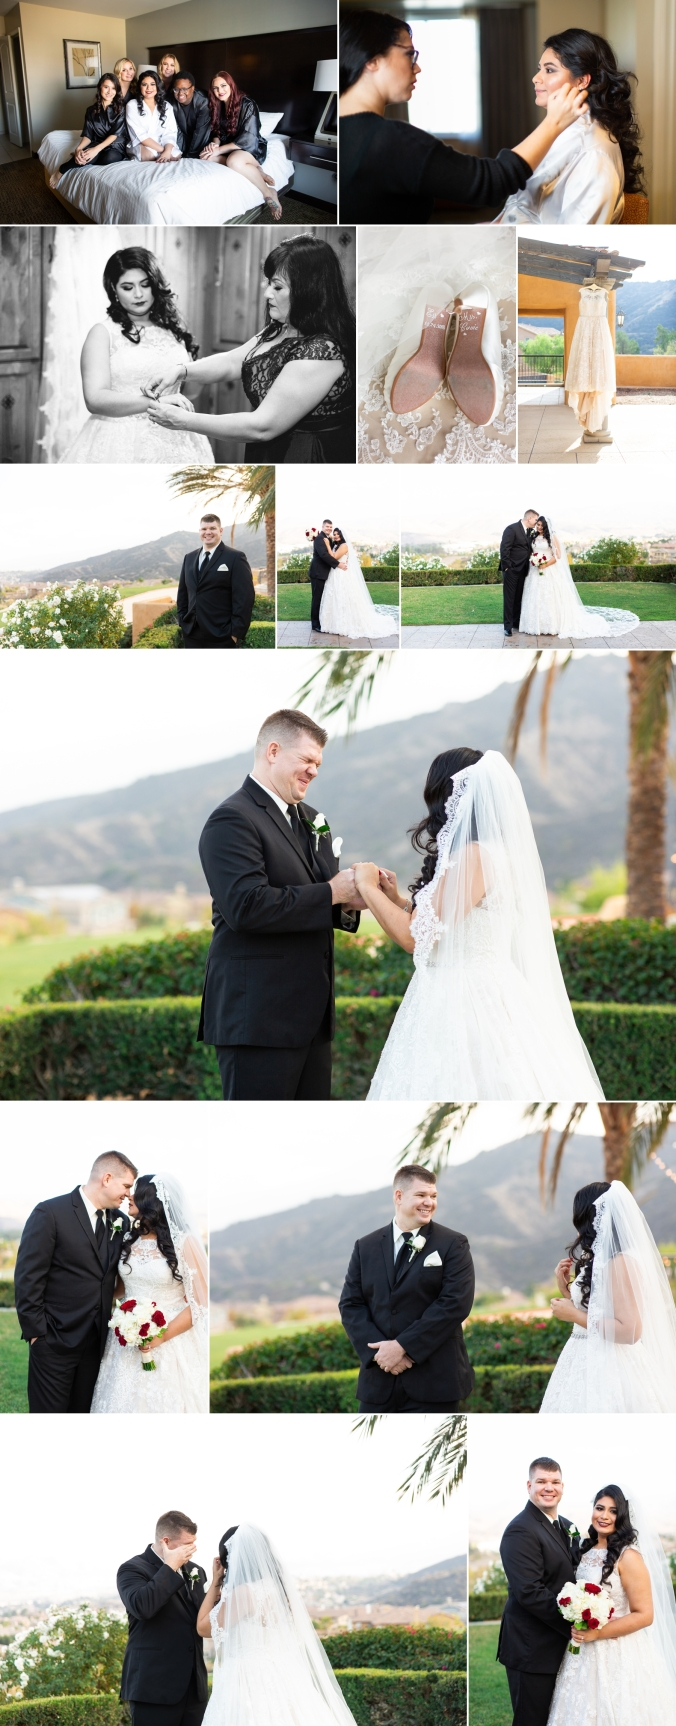 affordable-wedding-photography-orange-county-wedgewood-at-the-retreat-wedding-shy-heart-studios-1.jpg